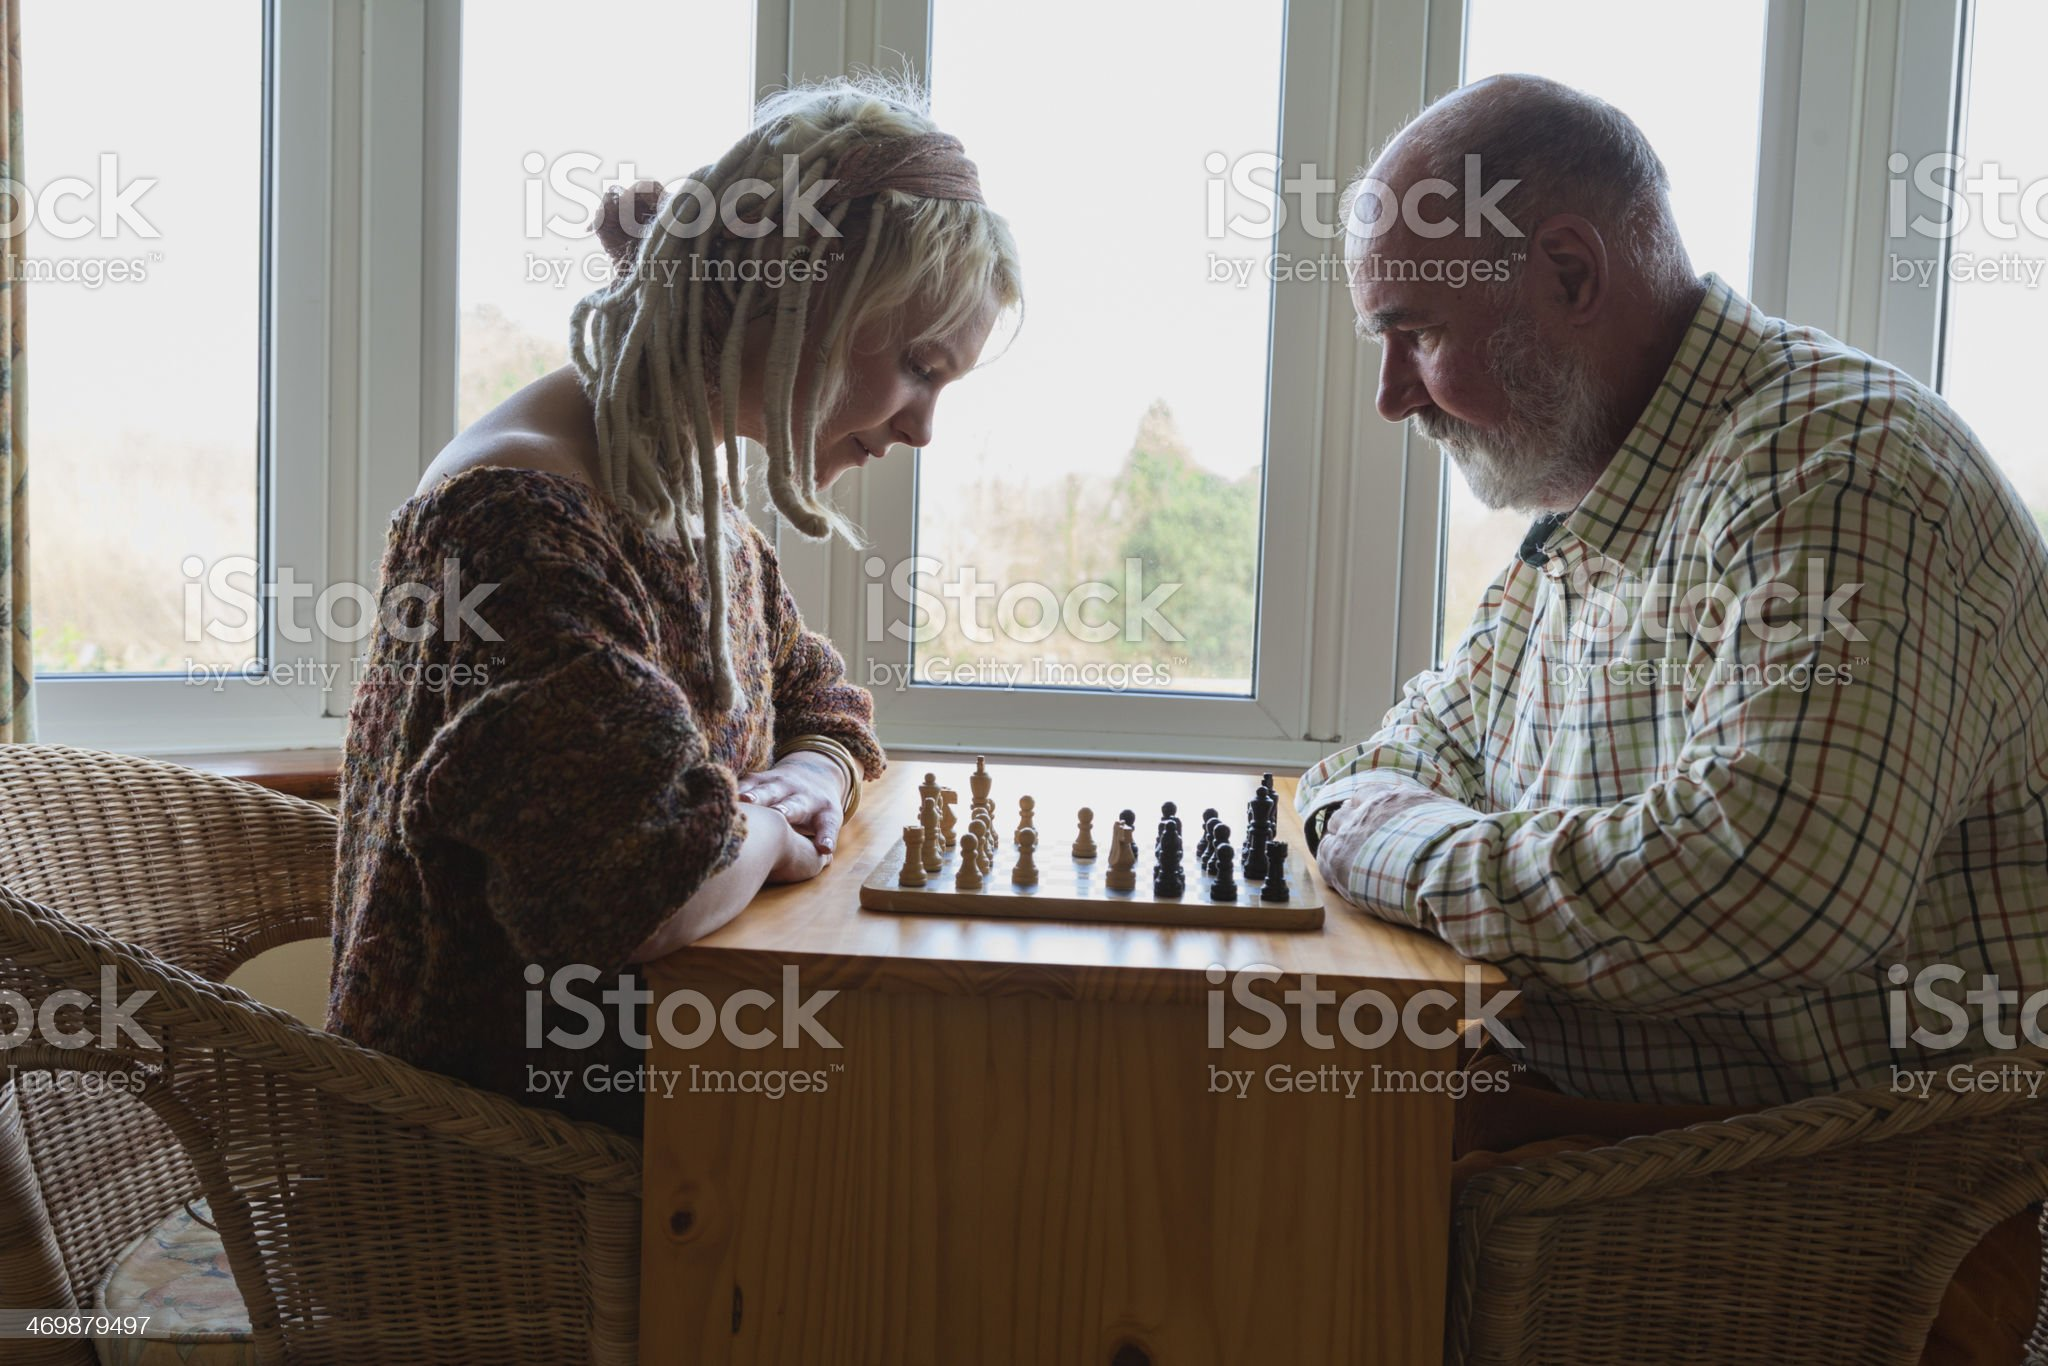 The Chess Players royalty-free stock photo